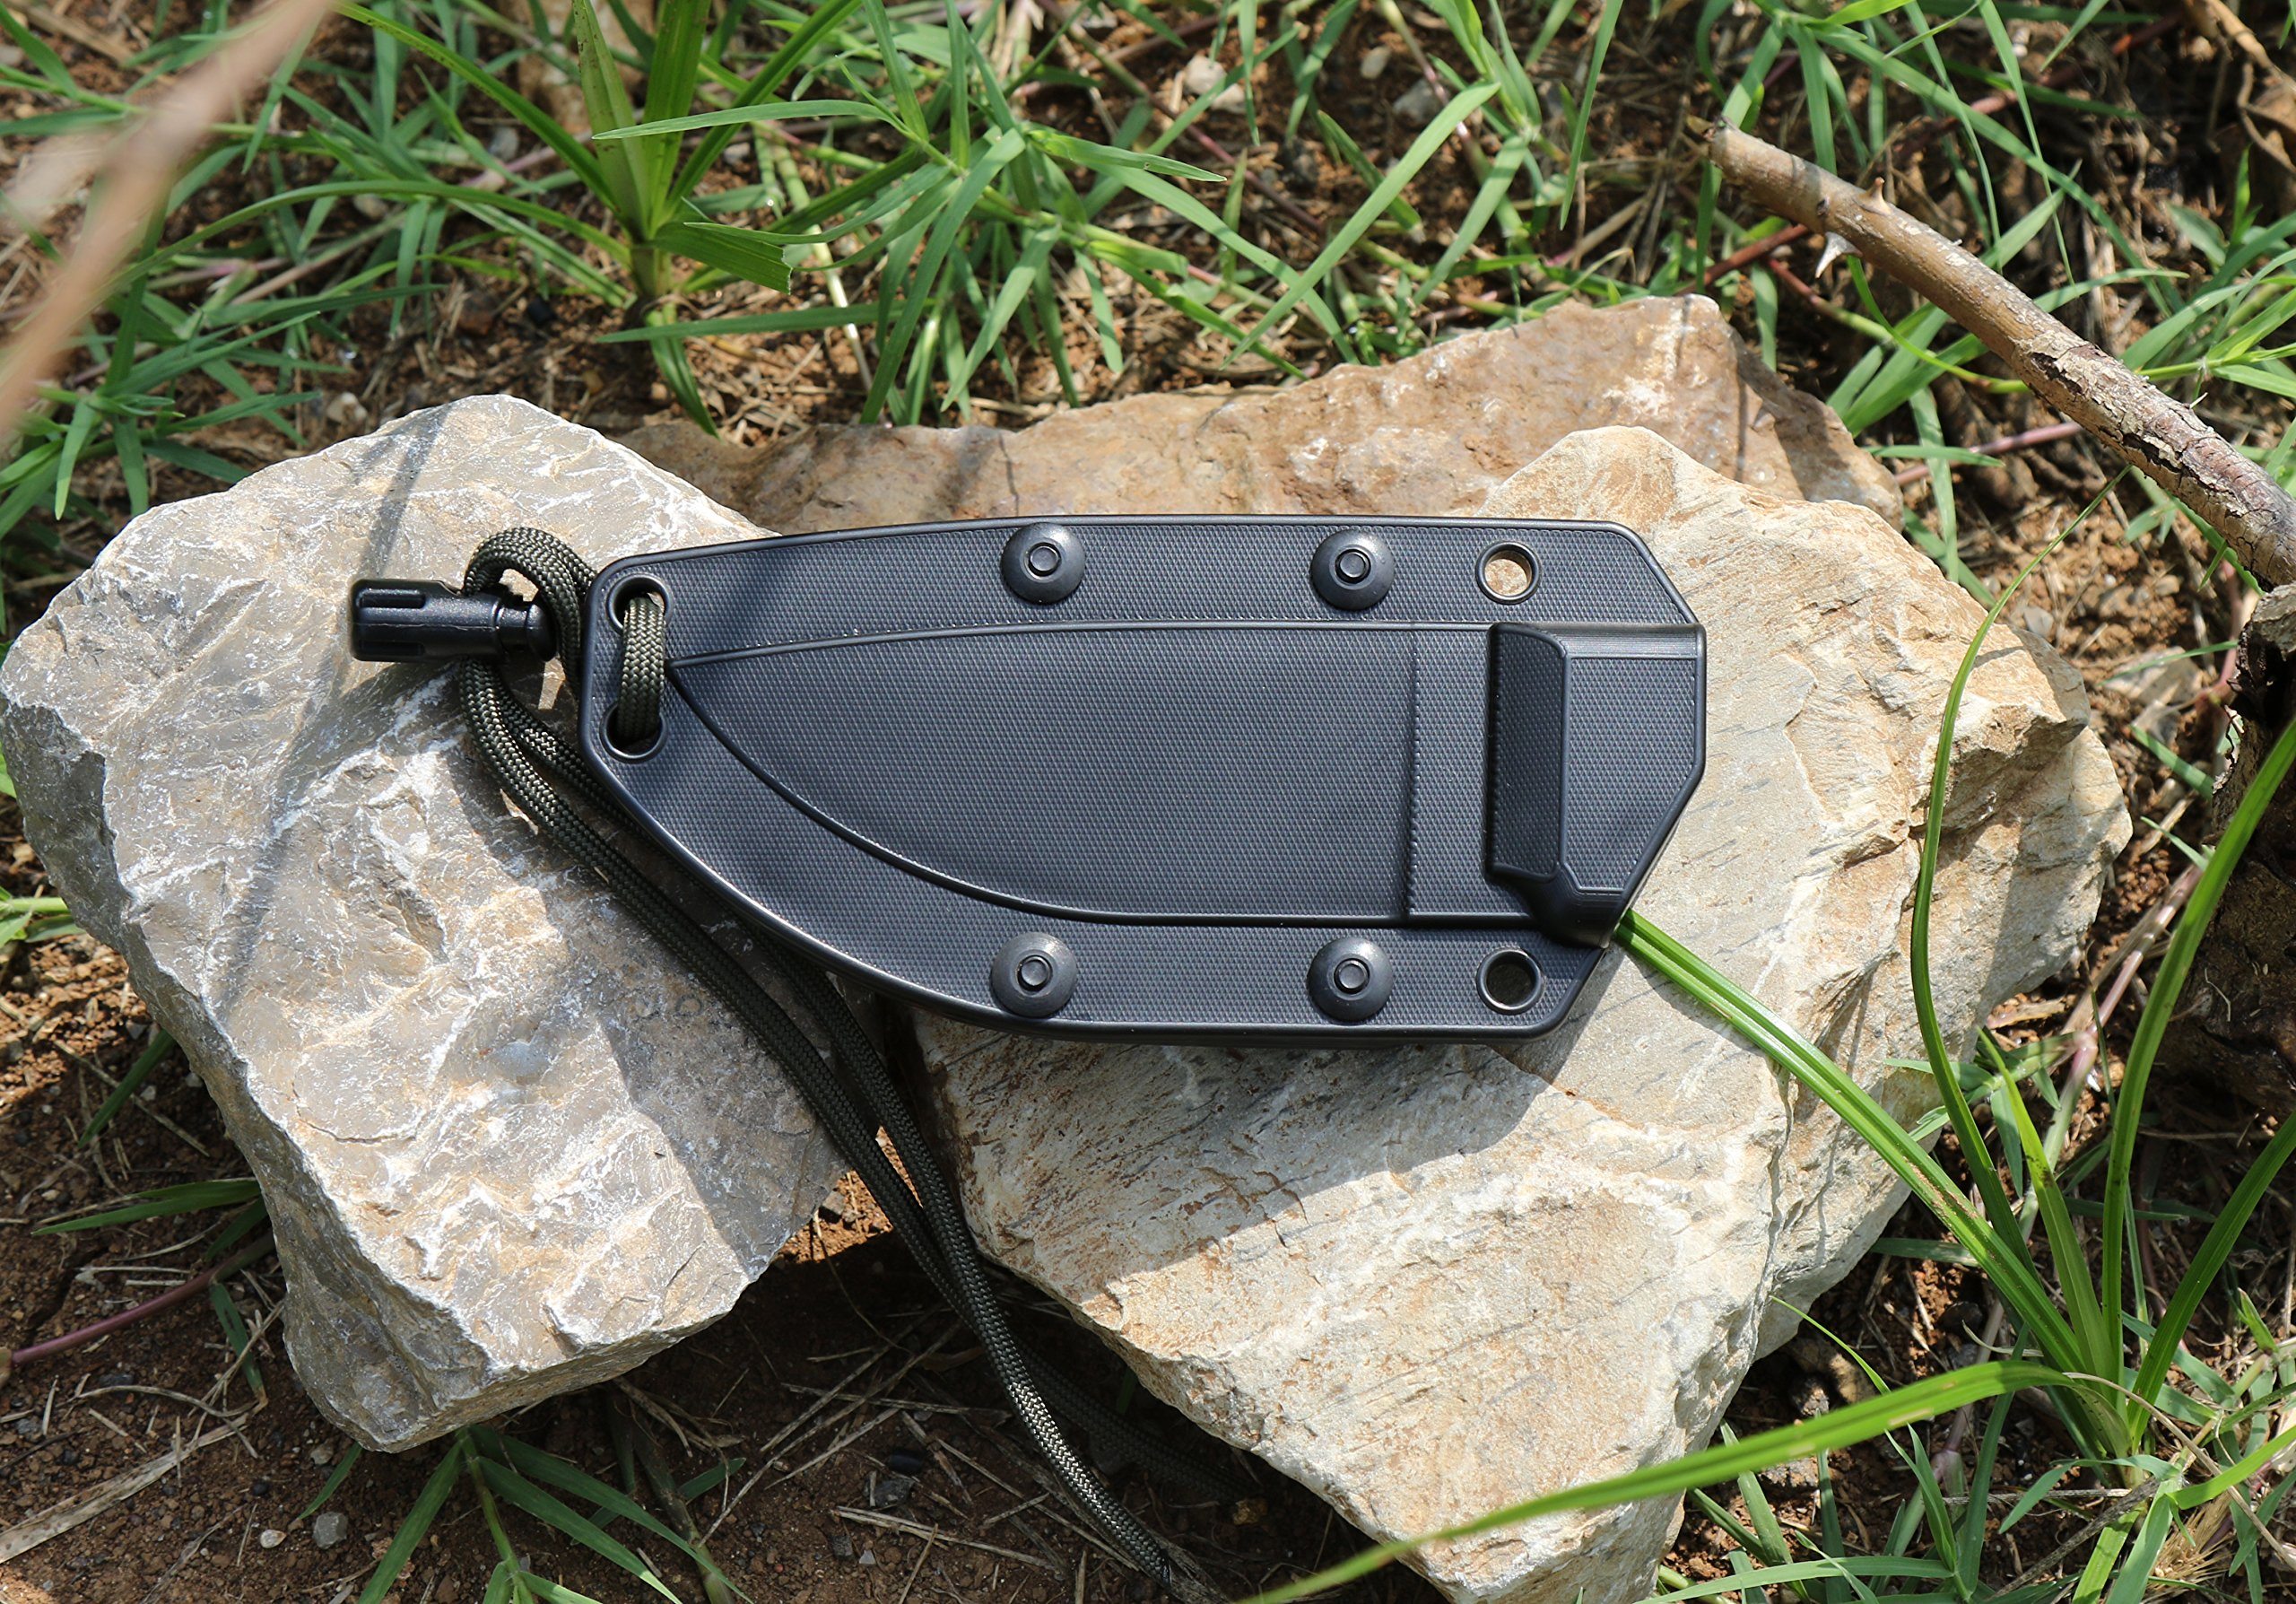 ESEE Knives 3P Fixed Blade Knife with Molded Polymer Sheath by ESEE (Image #5)